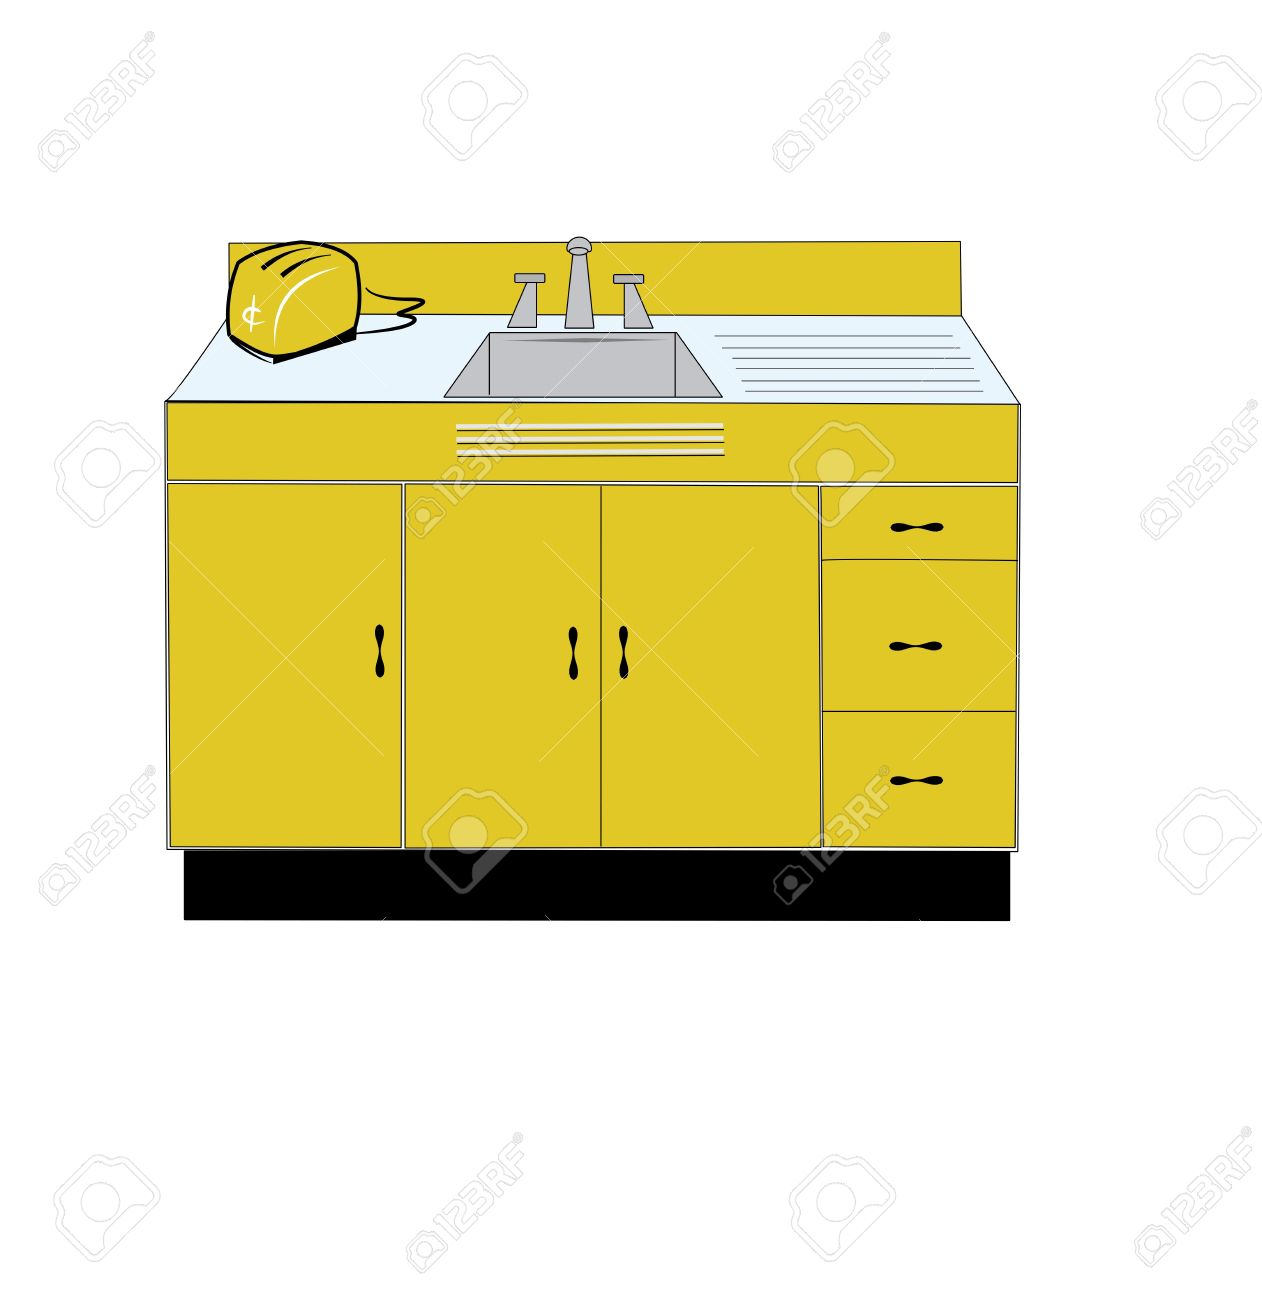 Cartoon kitchen with cabinets and window vector art illustration - Kitchen Counter Retro Kitchen Sink And Toaster